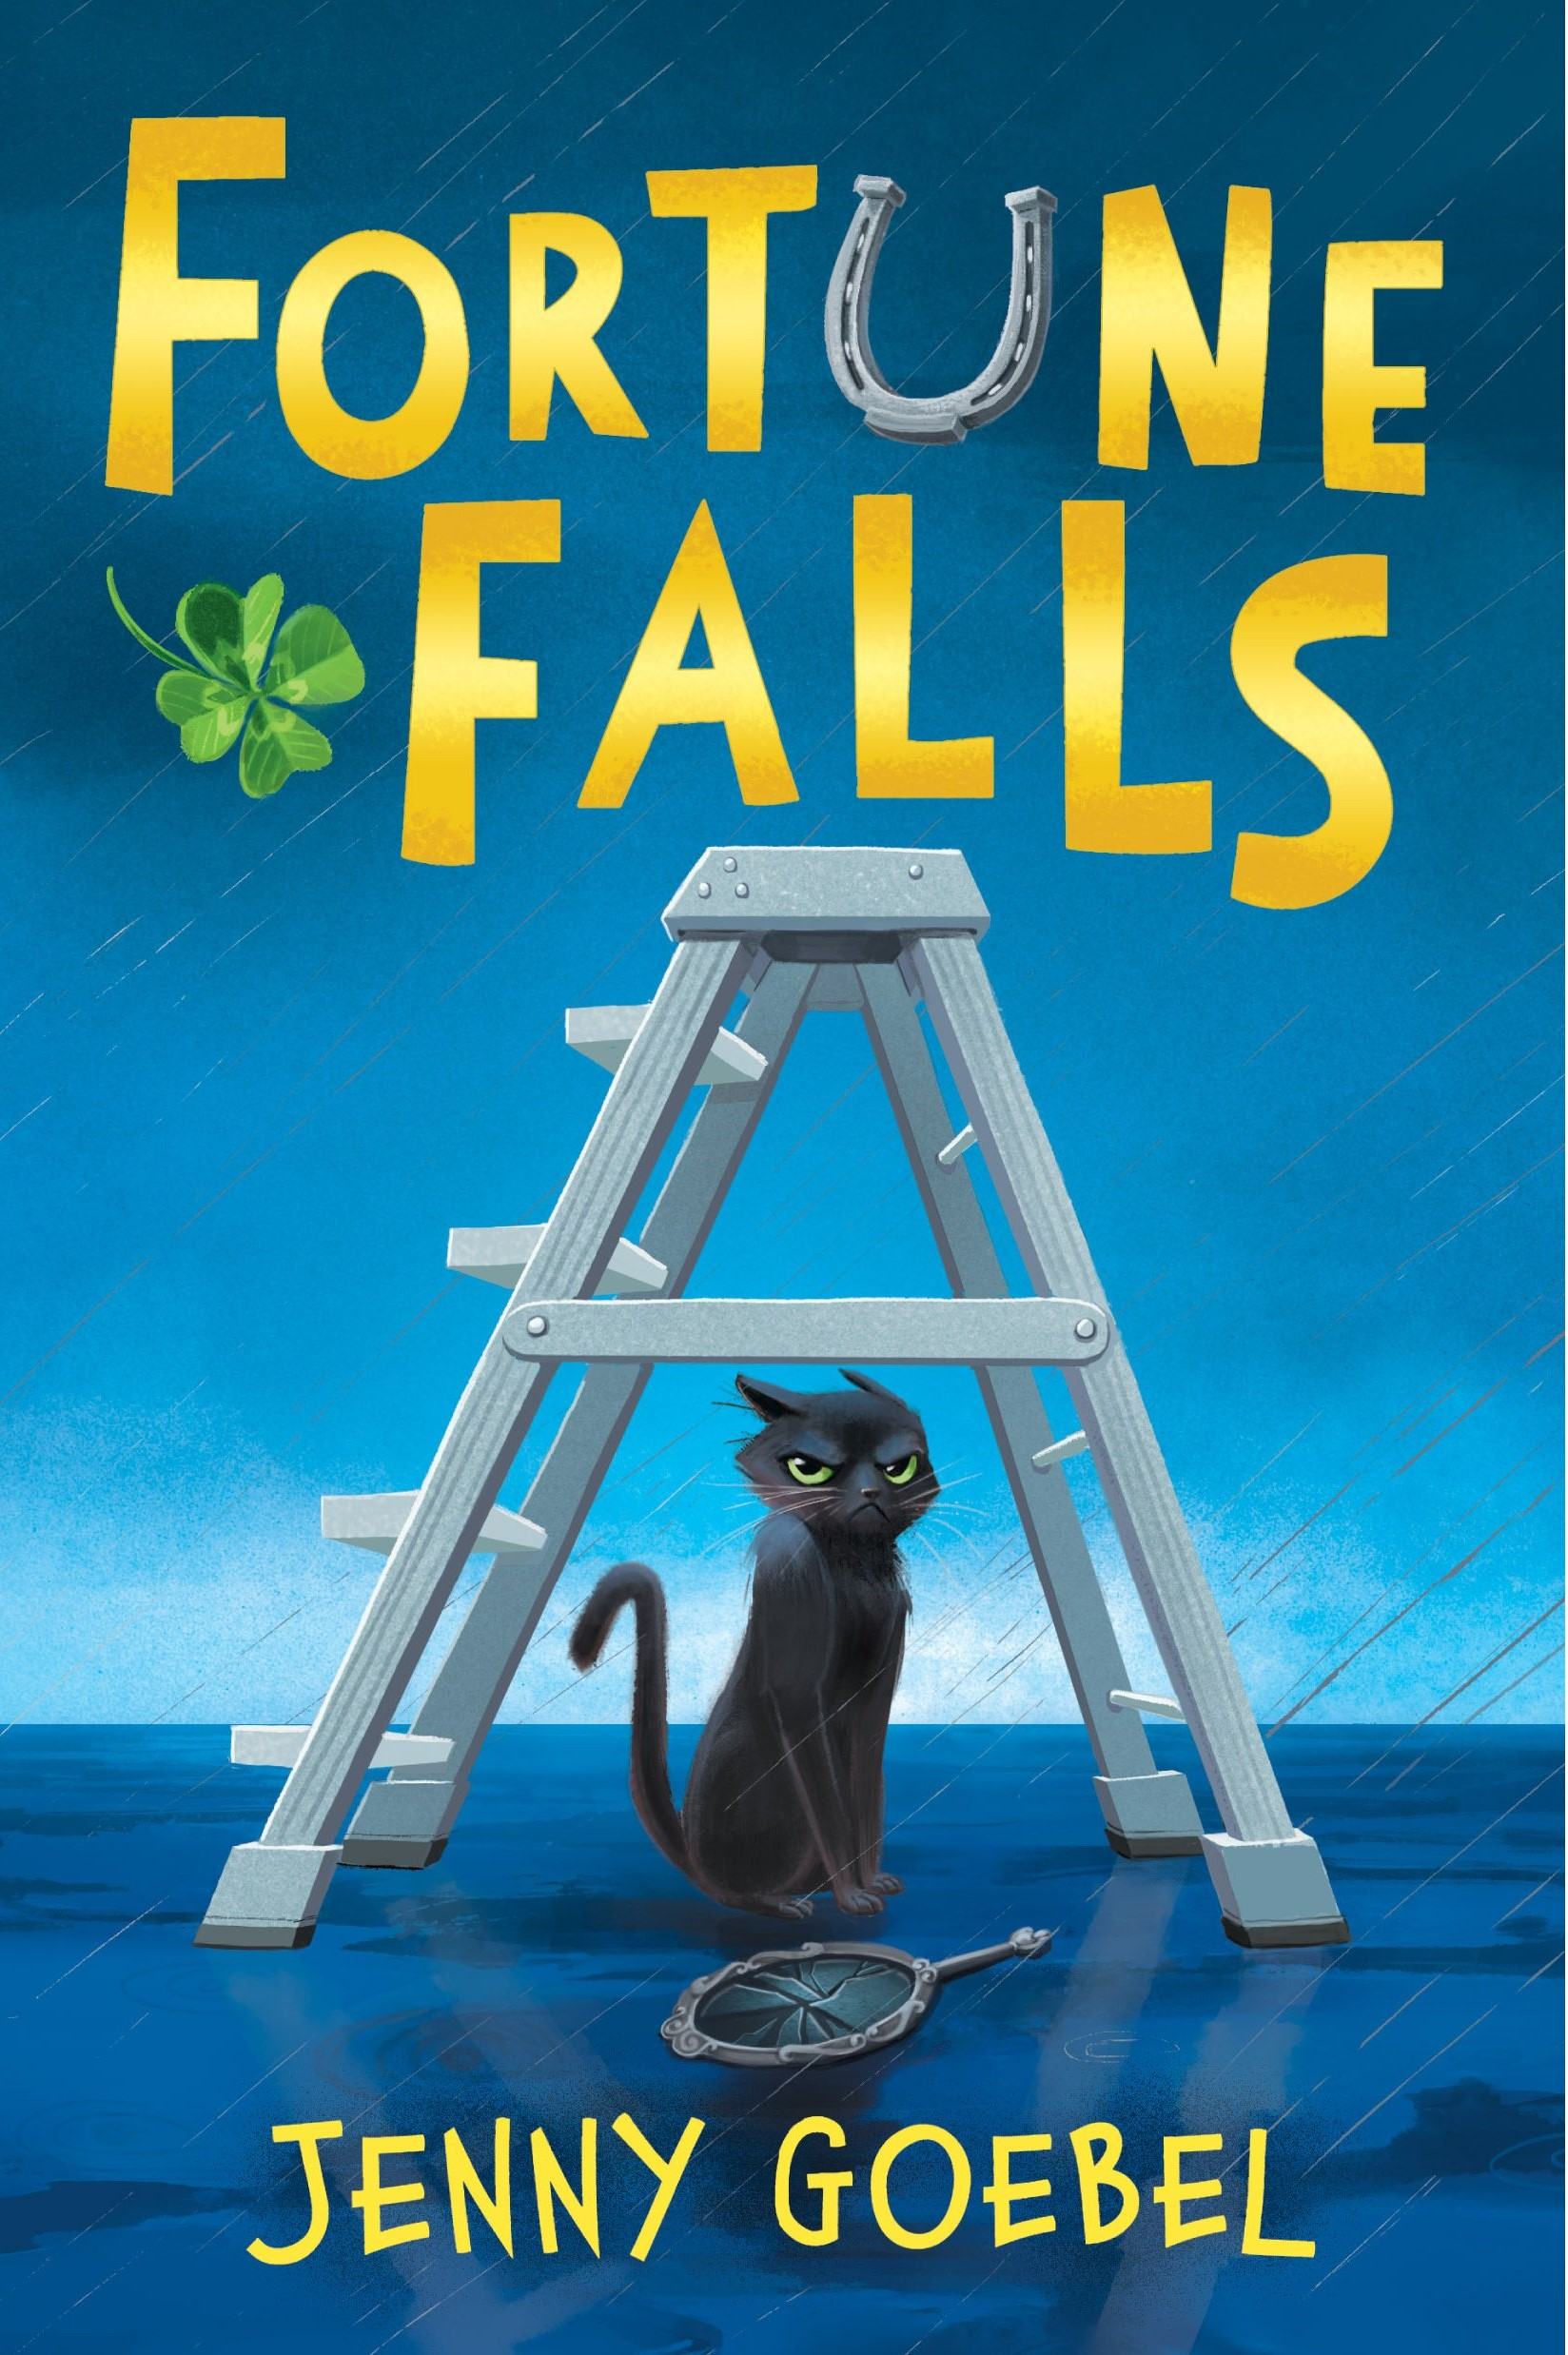 Book Cover Series January : Fortune falls goebel teaching in the elementary library